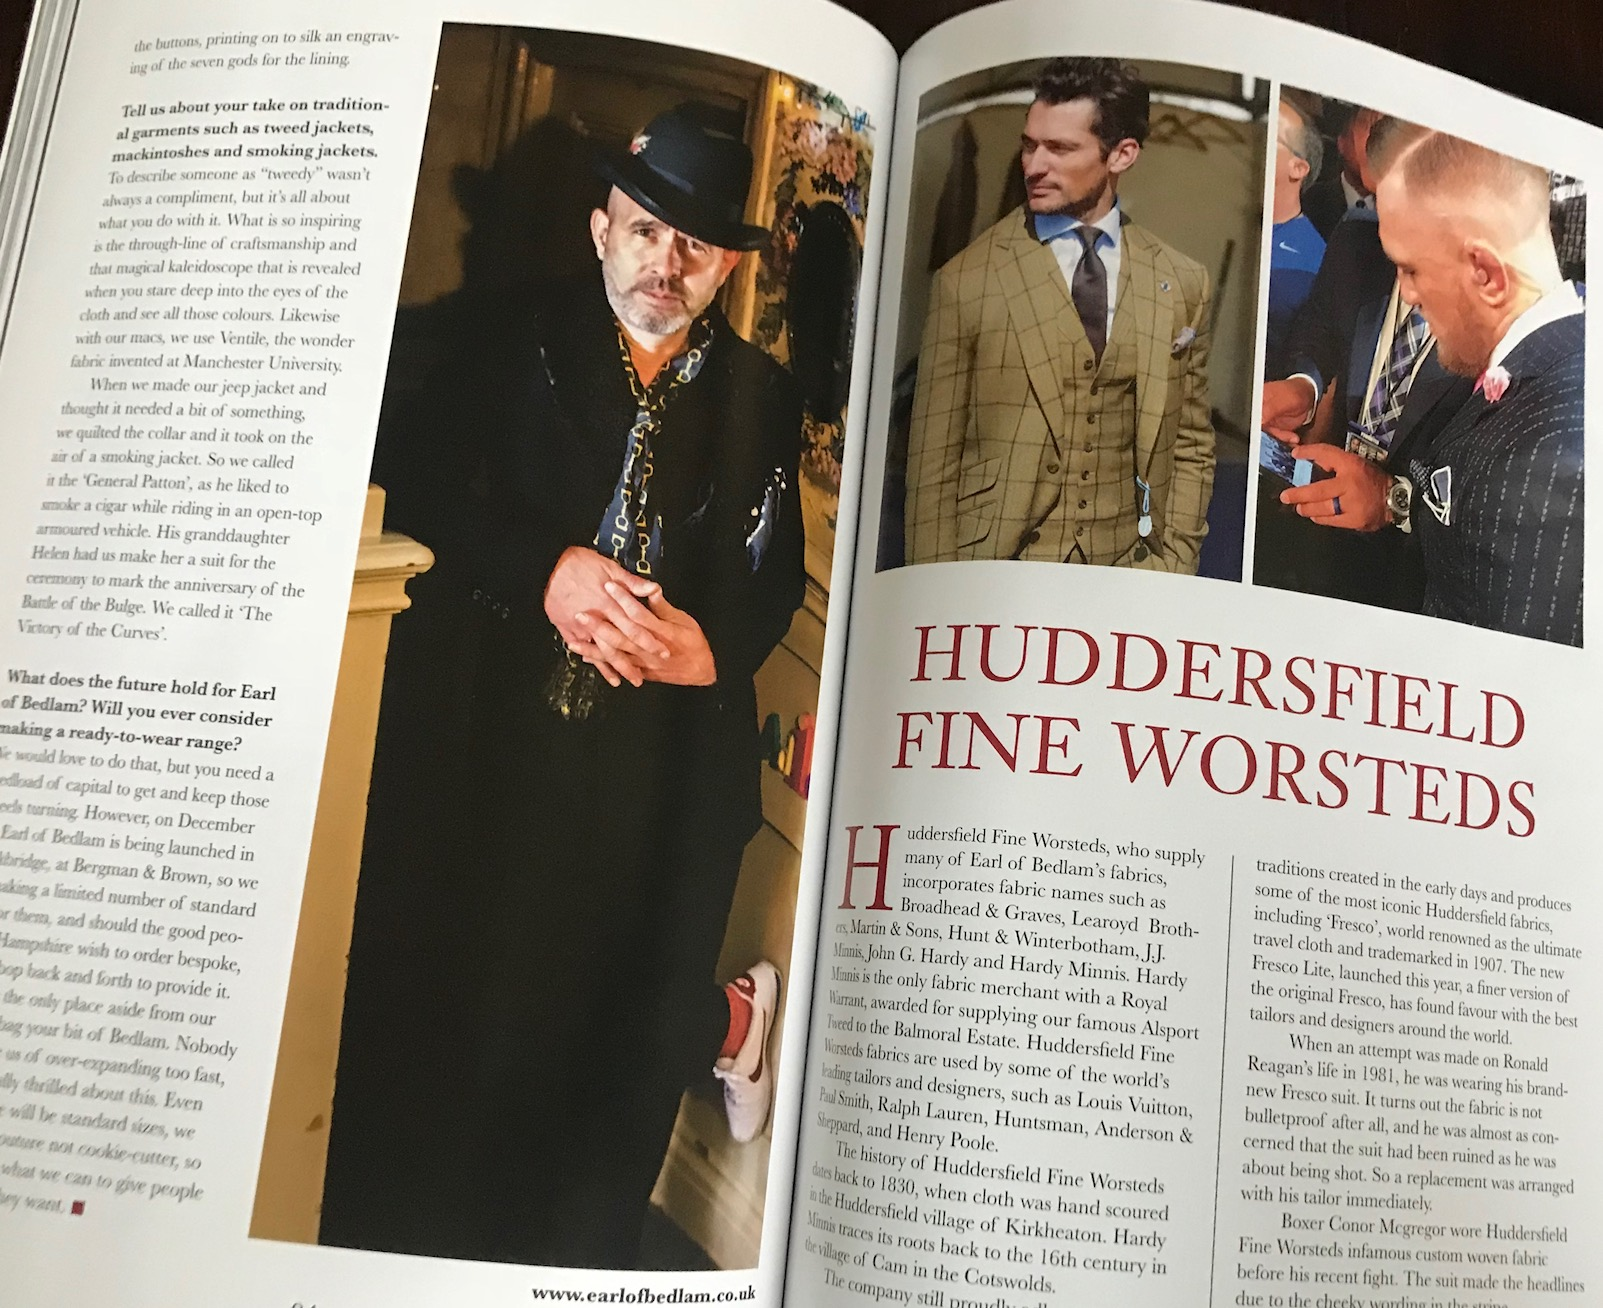 David Gandy gives Mr Wesley the sideways eye in the insert on Huddersfield Fine Worsteds in feature in The Chap magazine, Autumn / Winter 2017. Lucky it wasn't Brian on the facing age - that's the kinda competition that can crumble a man's confidence,